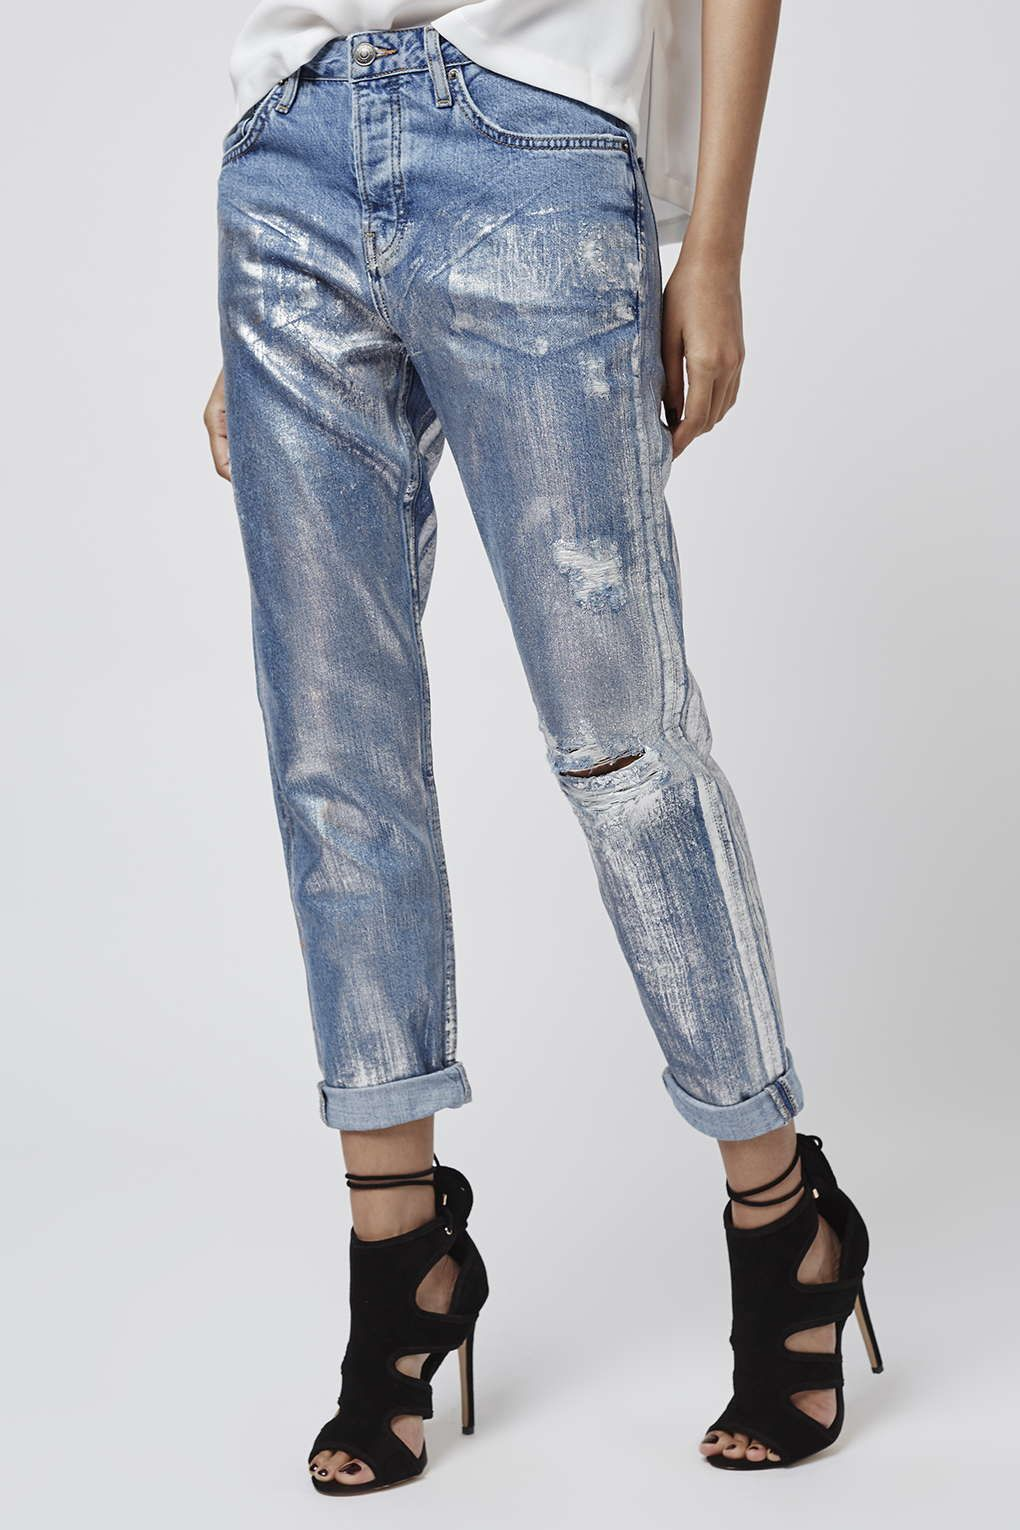 930d60e997815d Denim just got a SERIOUS update with Metallic coating in a low slung  boyfriend fit. No accessories needed. #Topshop